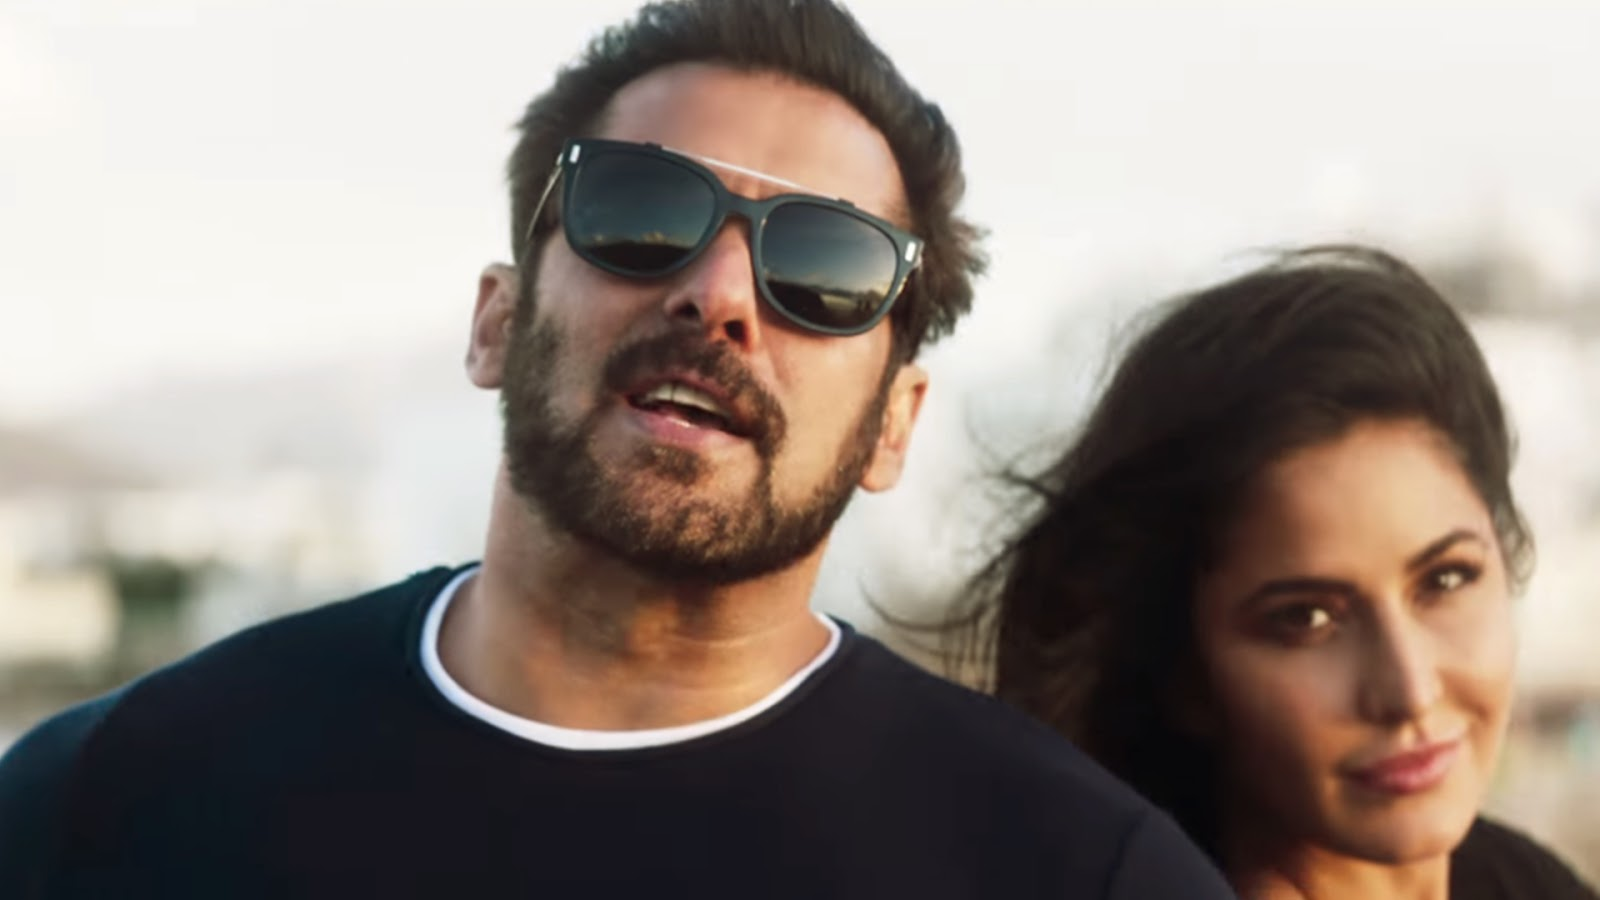 Salman Khan Hd Wallpapers From Swag Se Swagat Song Pop And Top